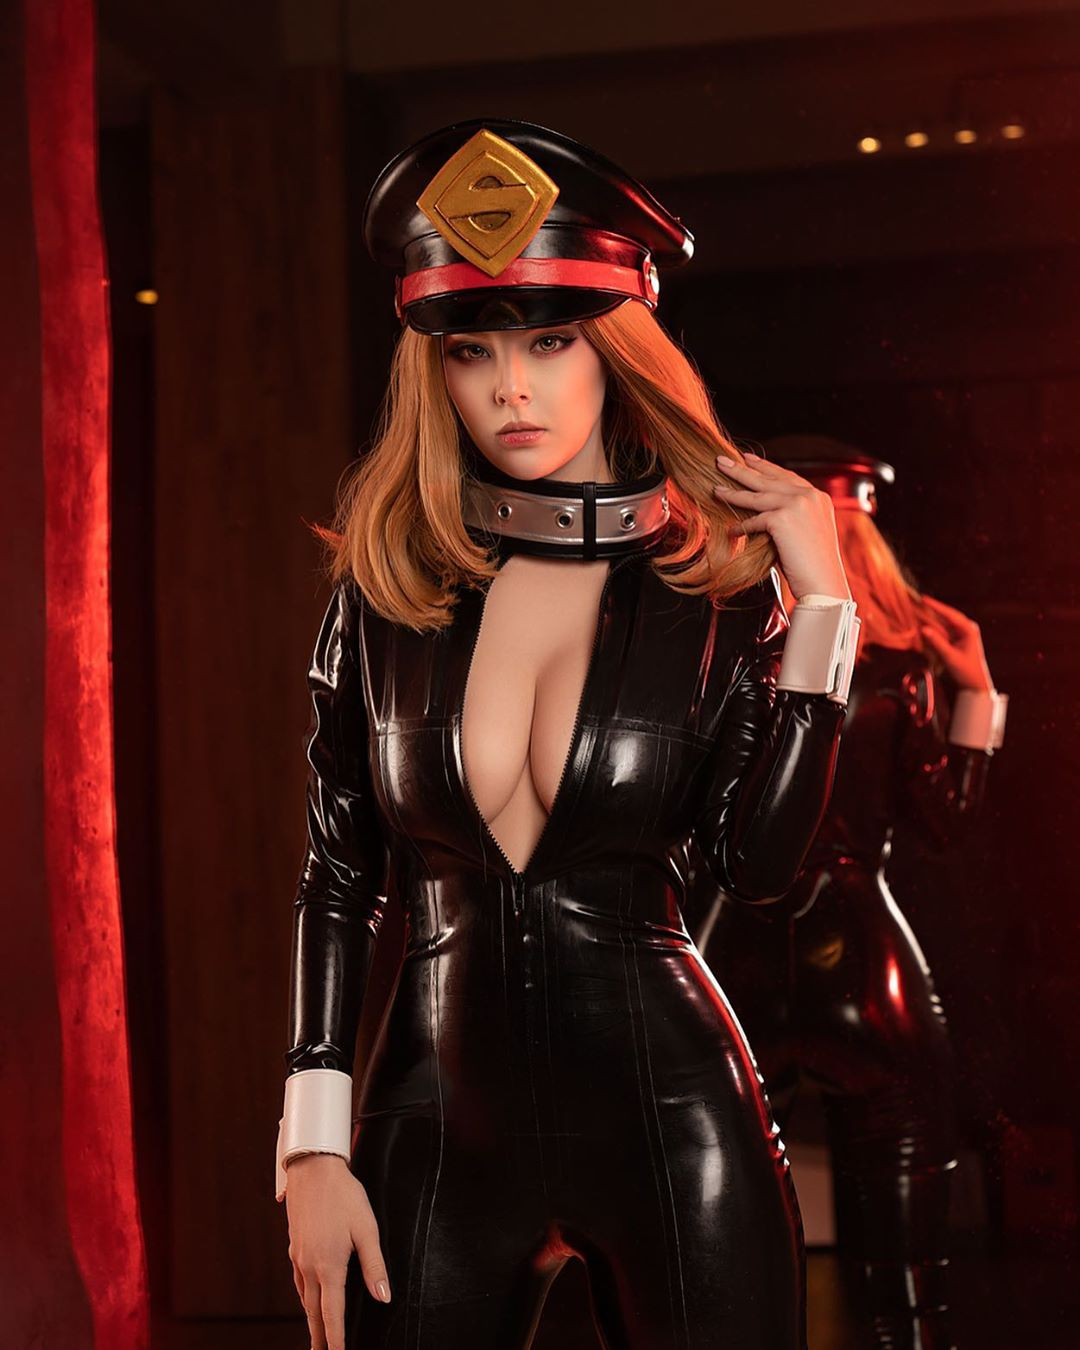 Camie Cosplay by Helly Valentine